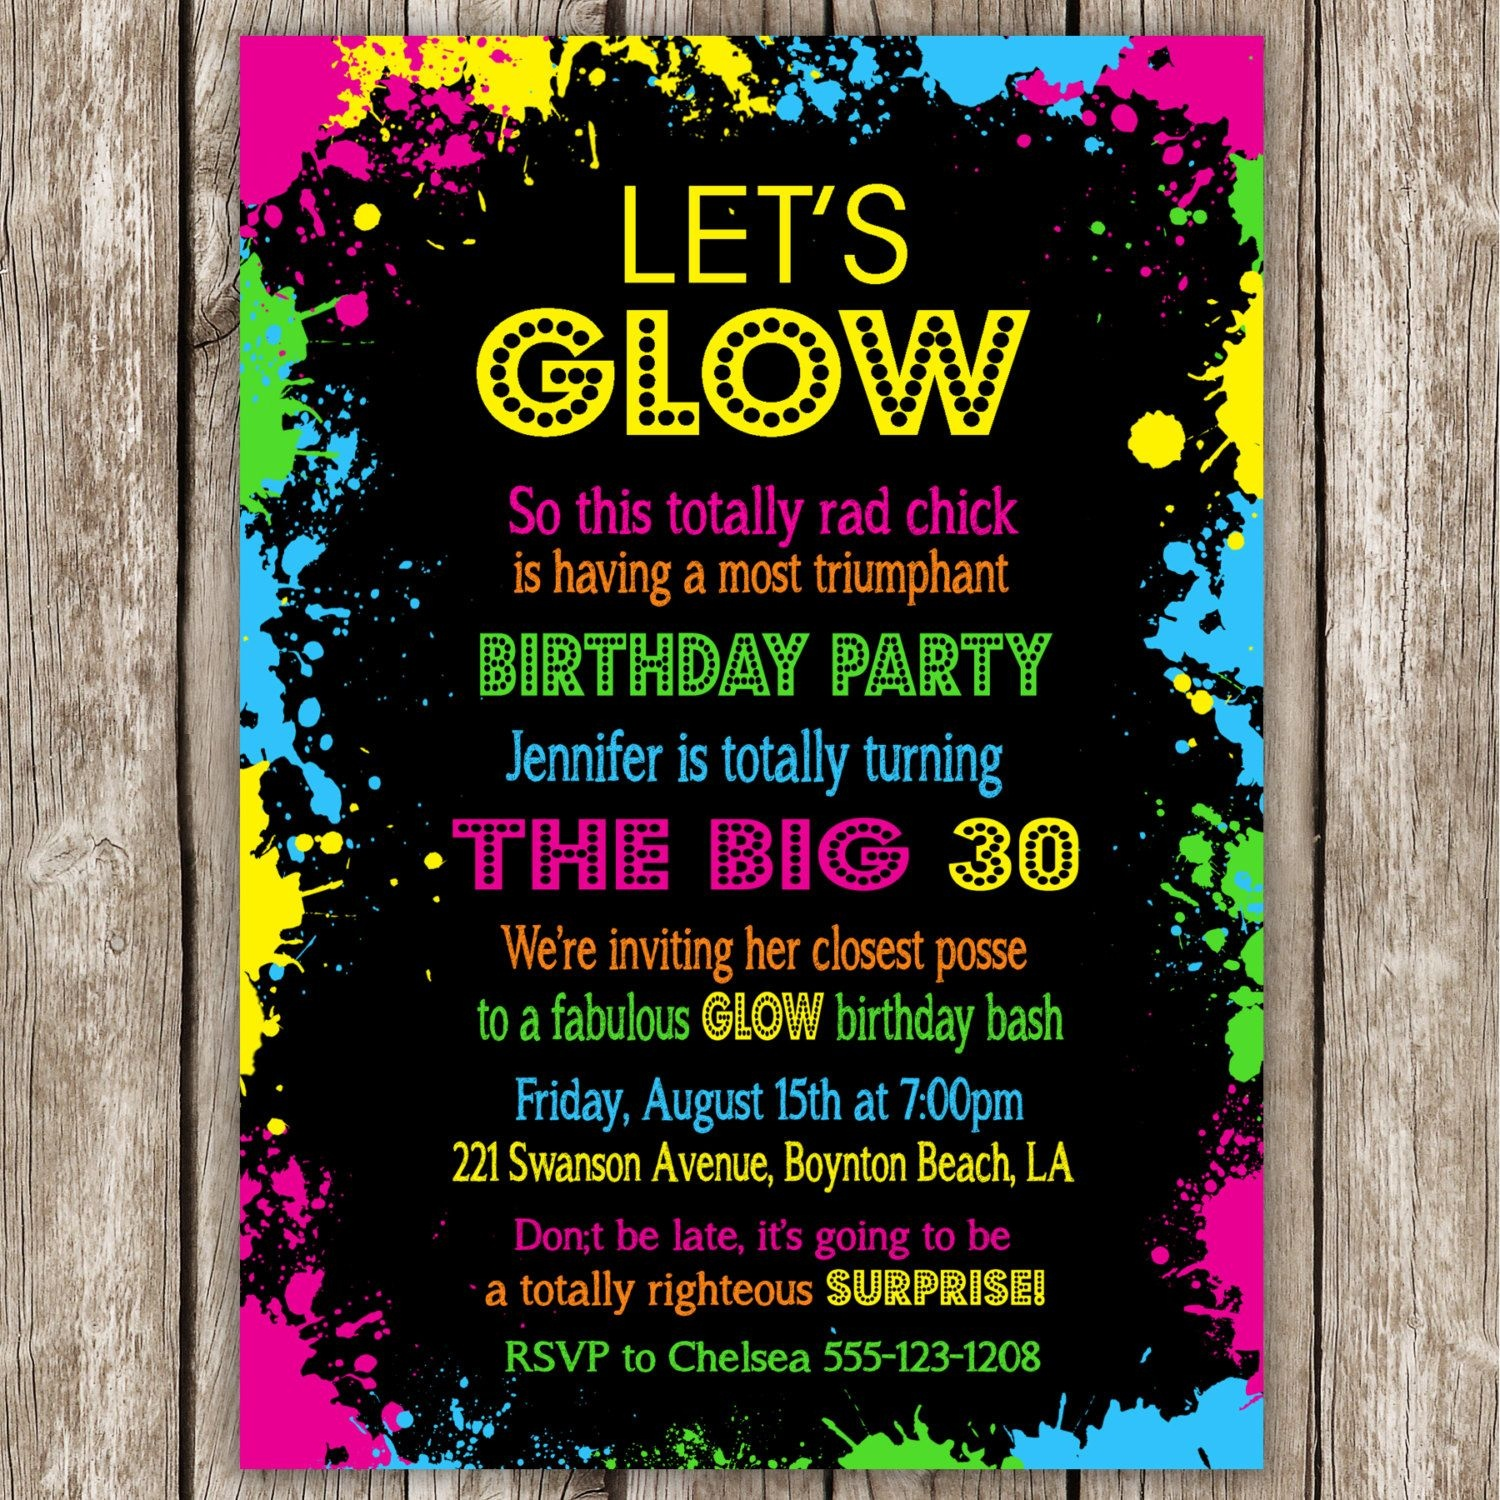 Neon Party Invitation Wording | Glow In The Dark | Neon Party - Free Printable Glow In The Dark Birthday Party Invitations